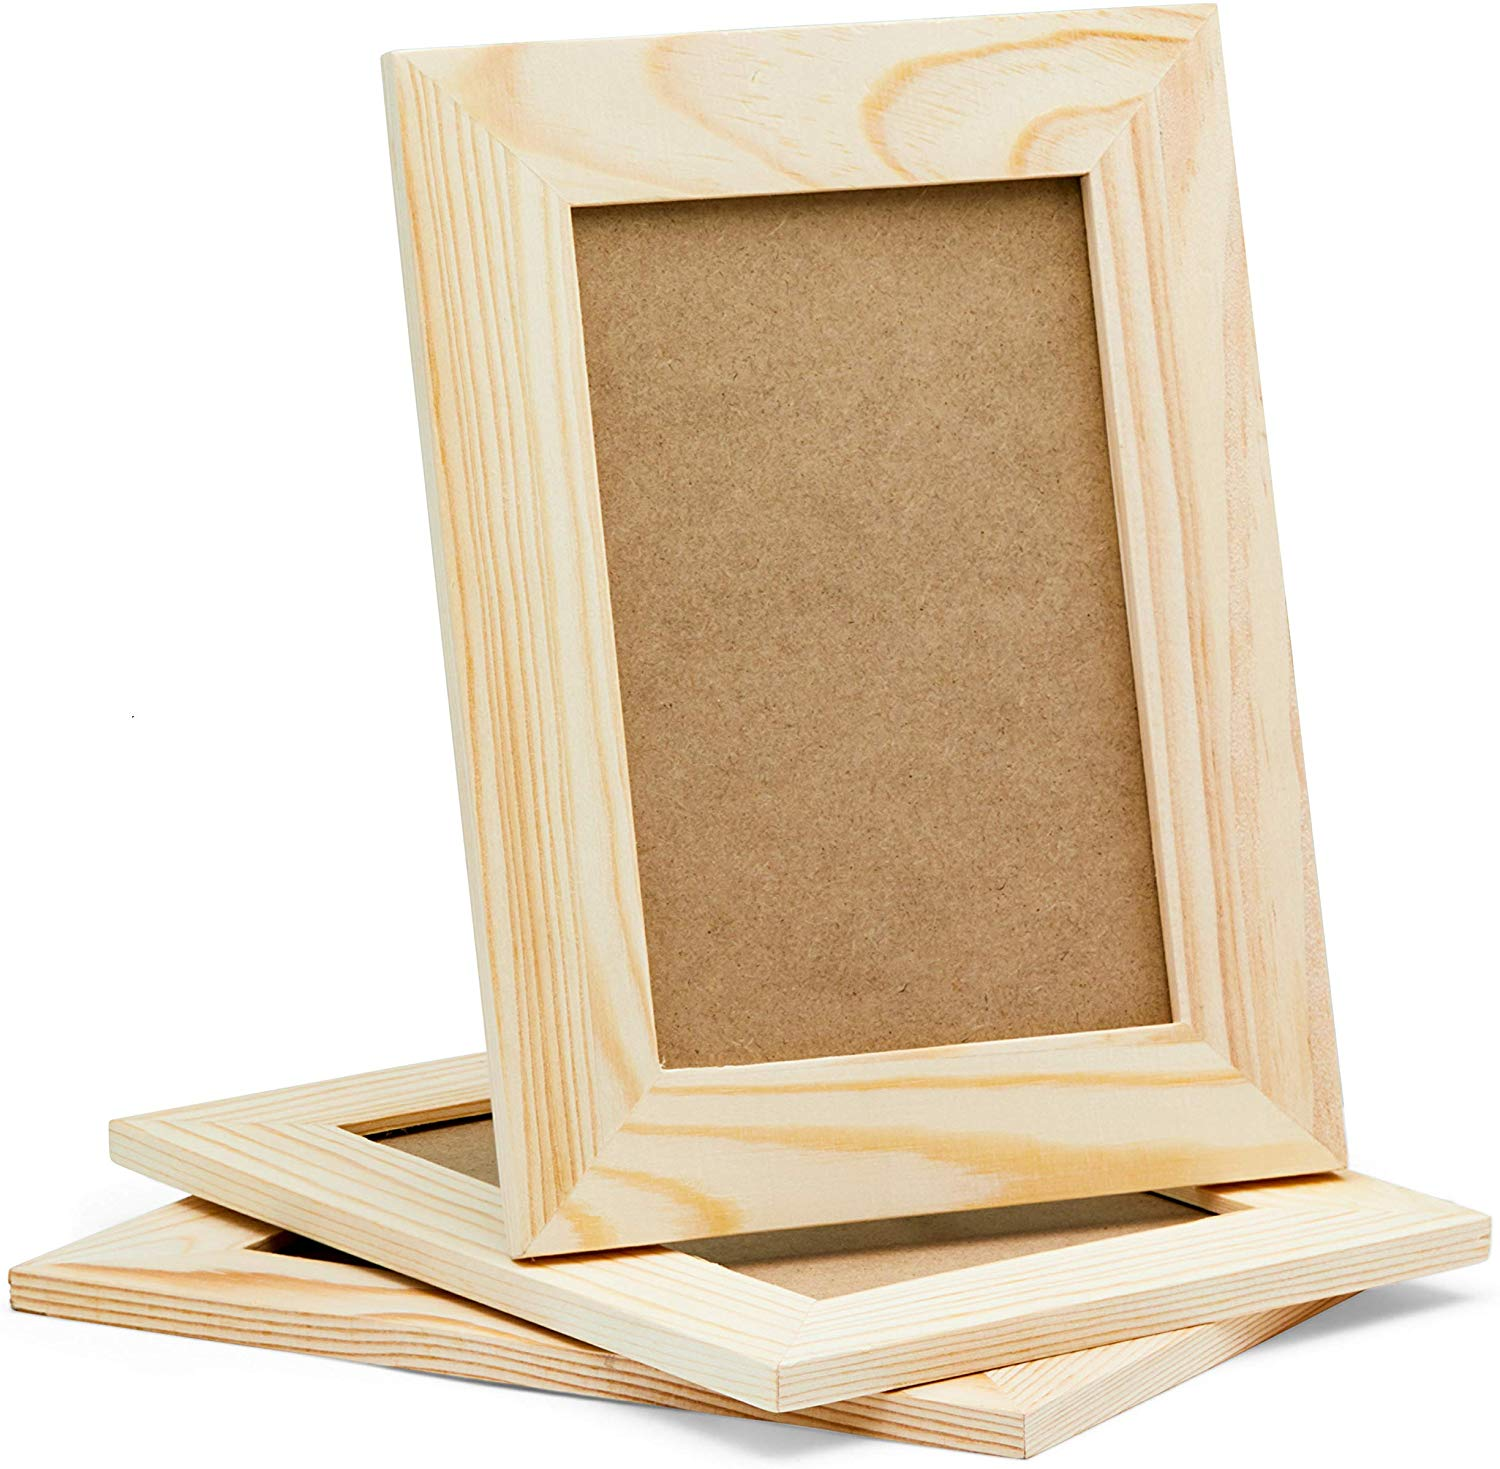 These 3 picture frames are made of solid pine wood, and can stand in both portrait and landscape positions with the included standing pegs, or they can be hung on the wall. They actual frame is 6x8 inches and it hold 4x6 photos - Valentine's Day gift ideas